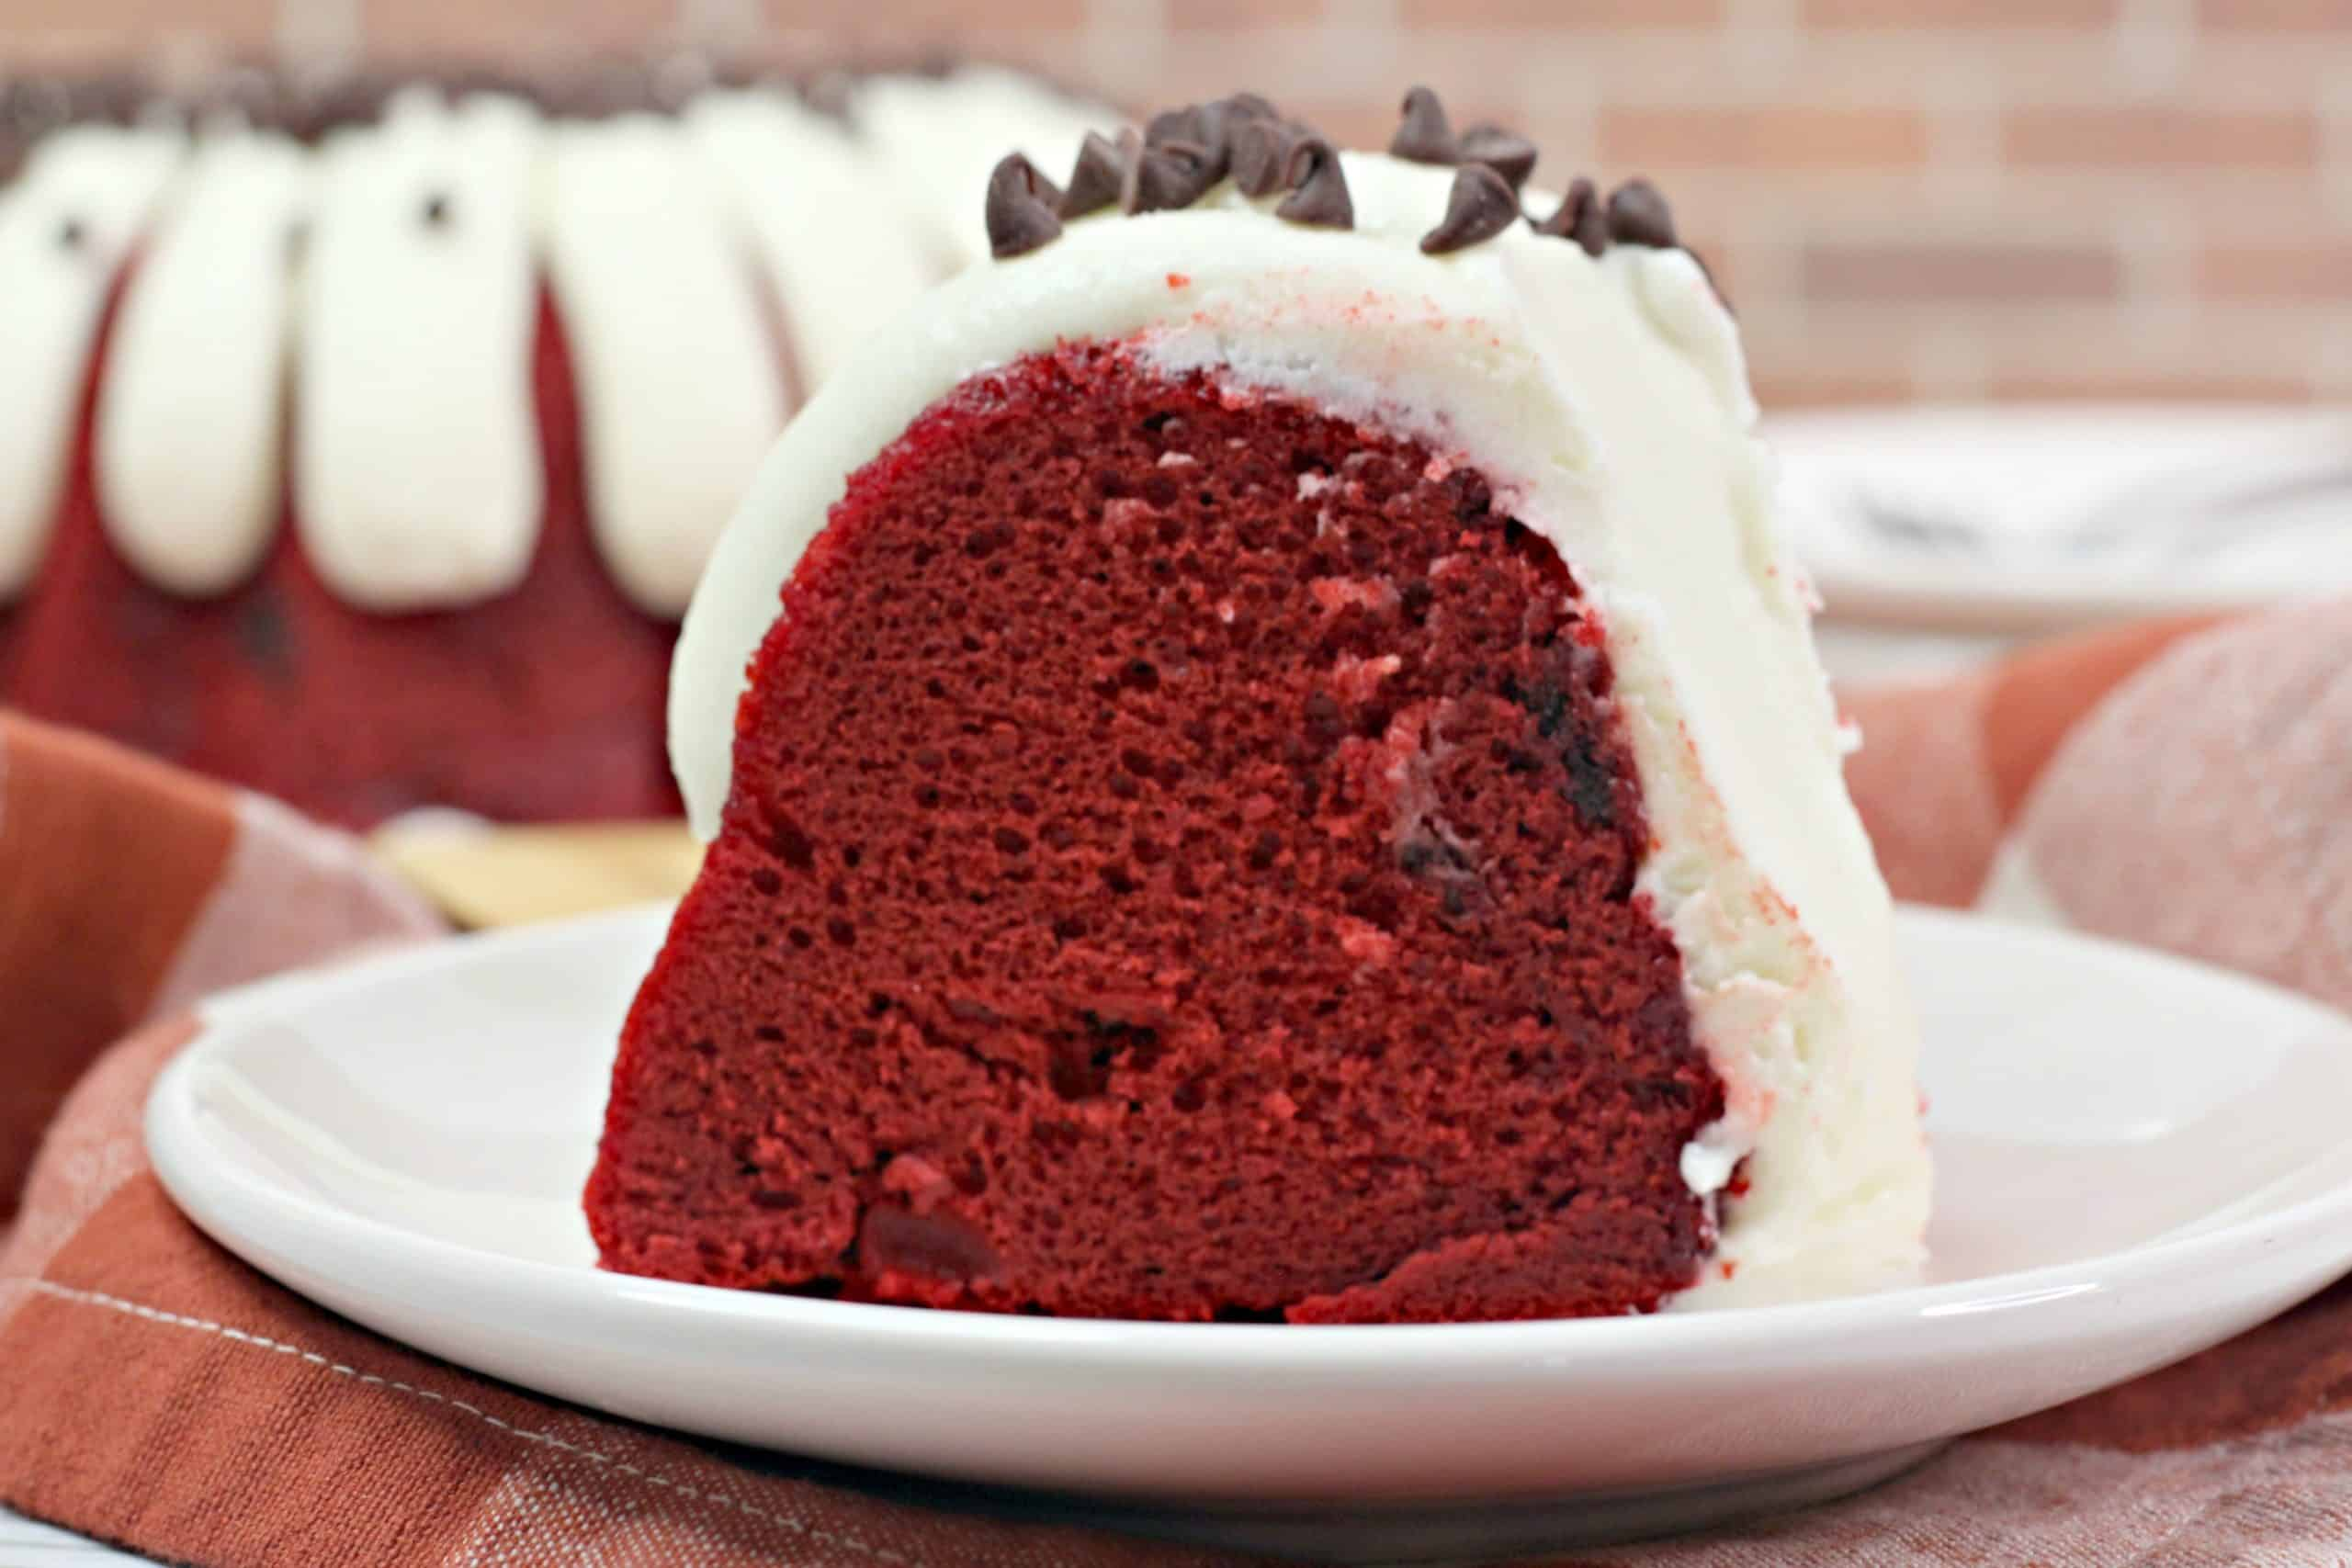 Slice of Red Velvet Bundt Cake